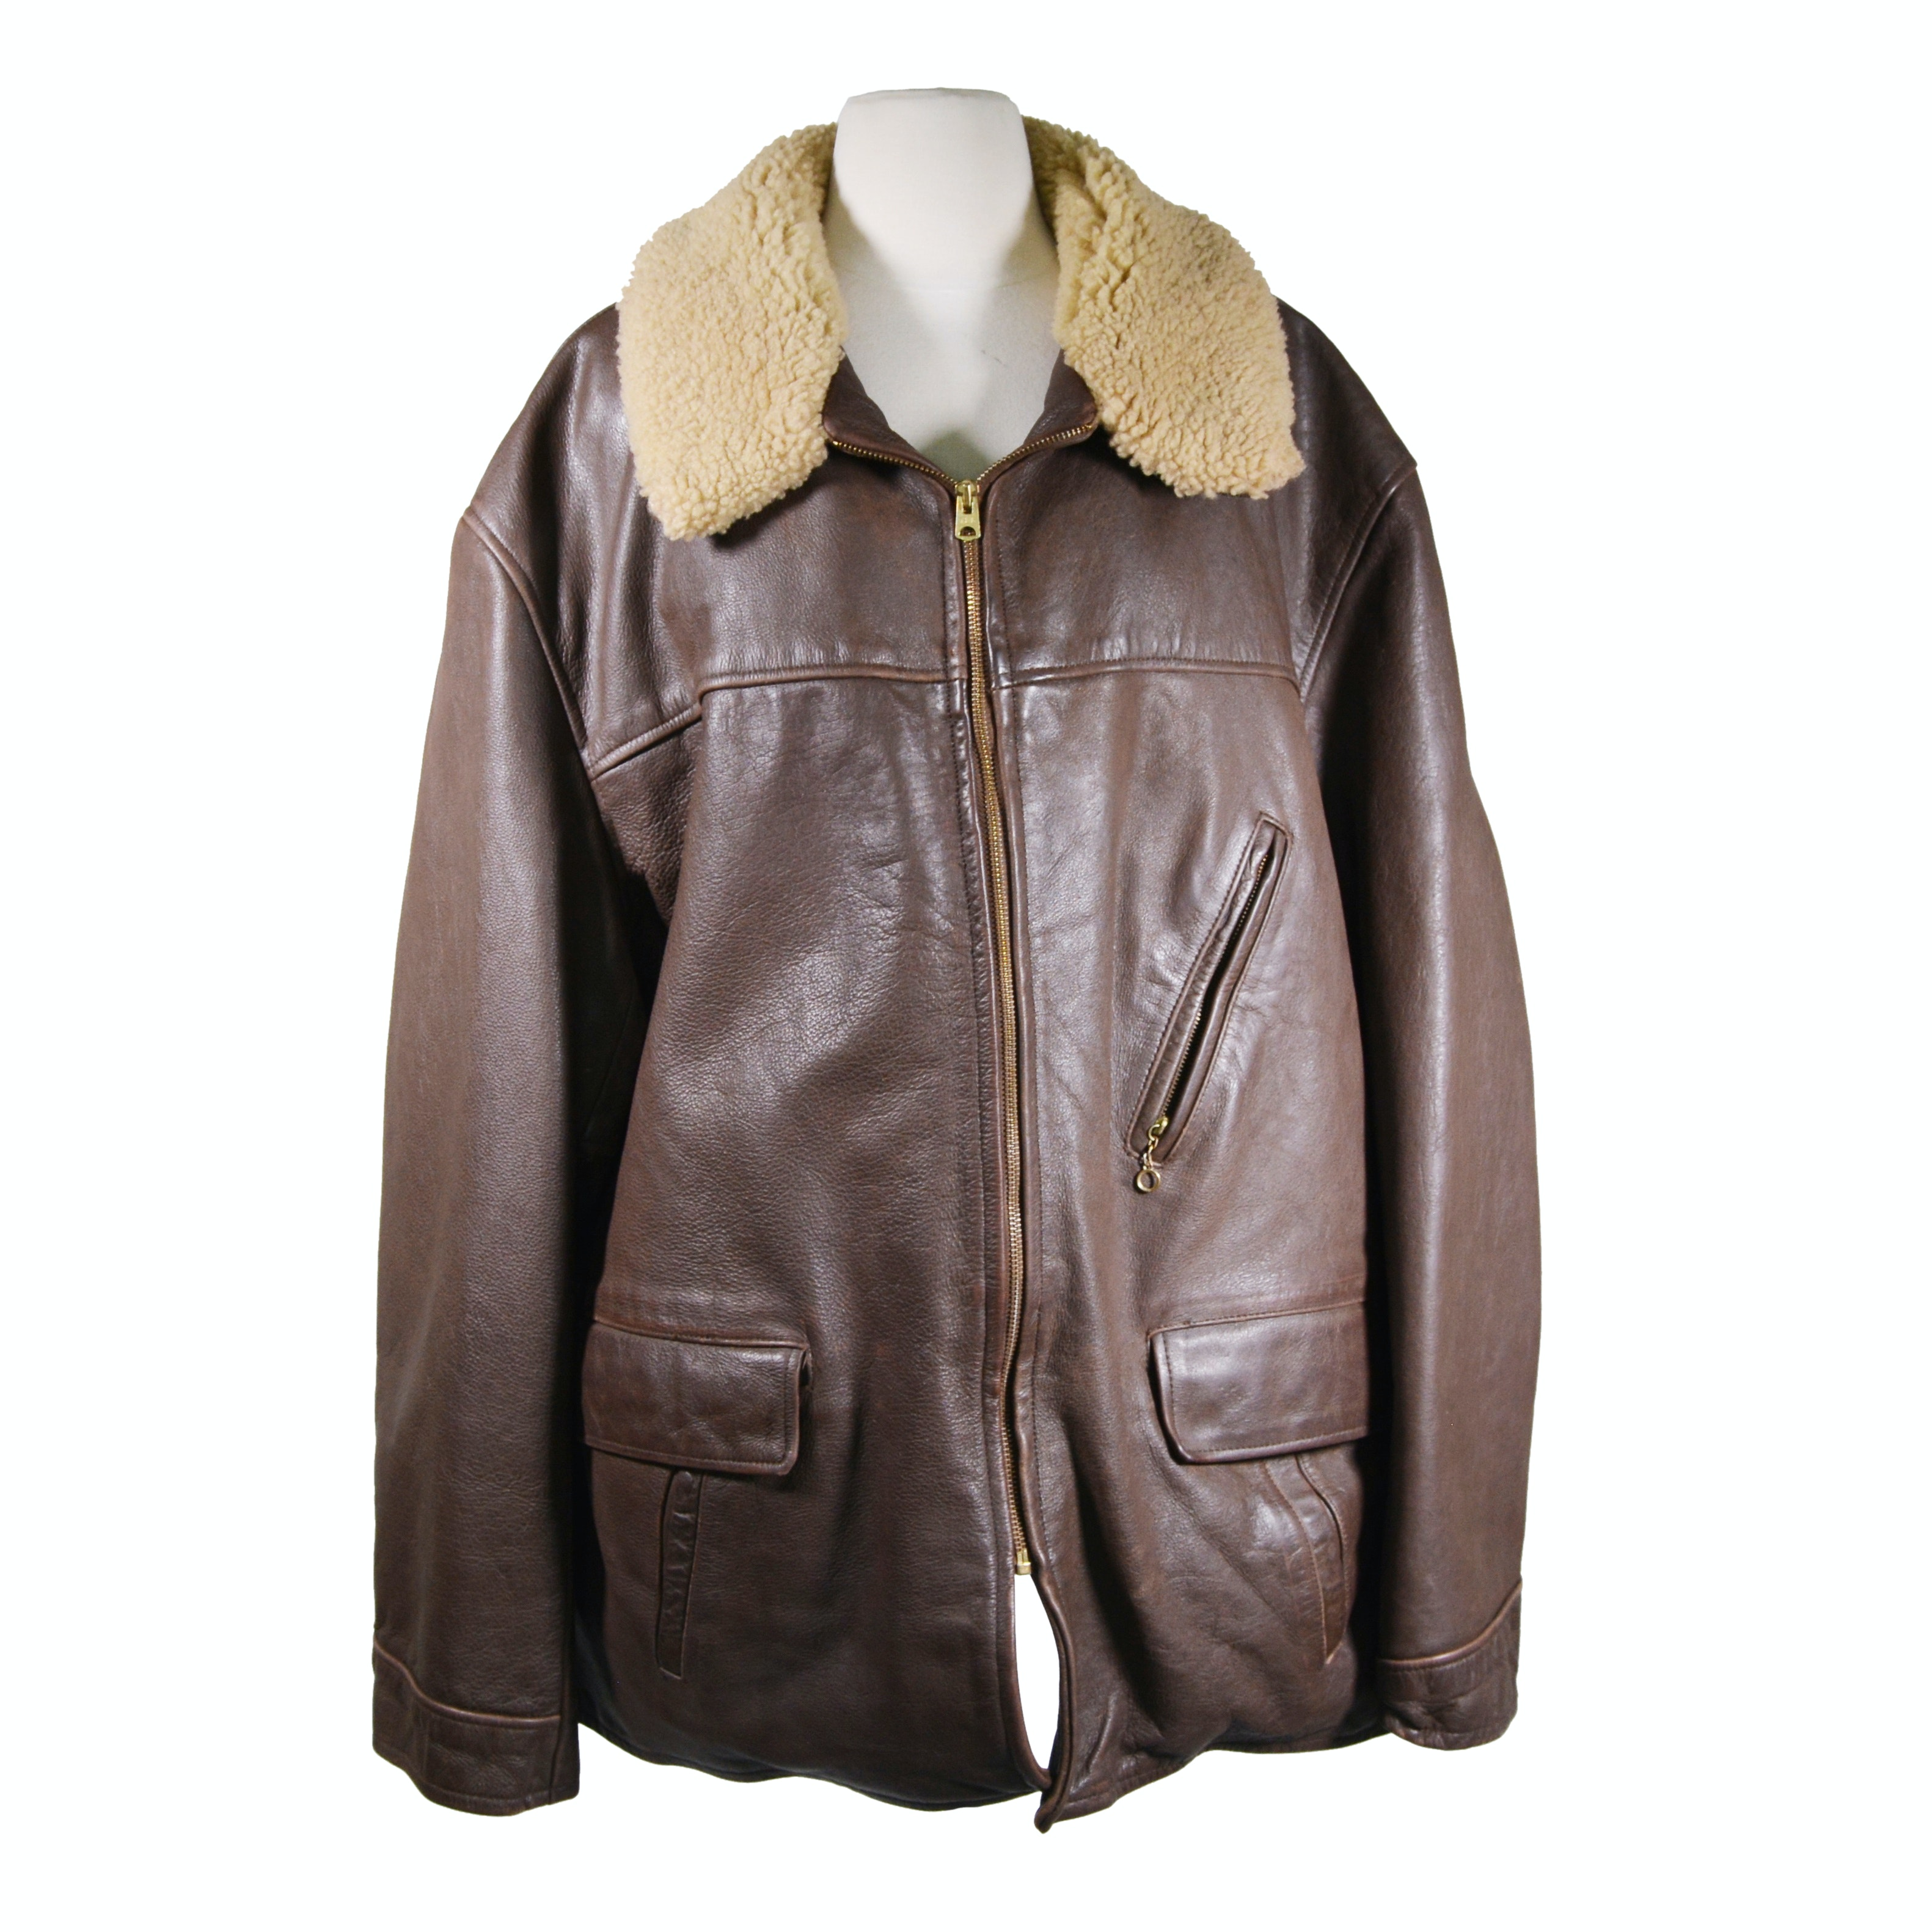 Men's Ralph Lauren Leather Coat with Shearling Collar